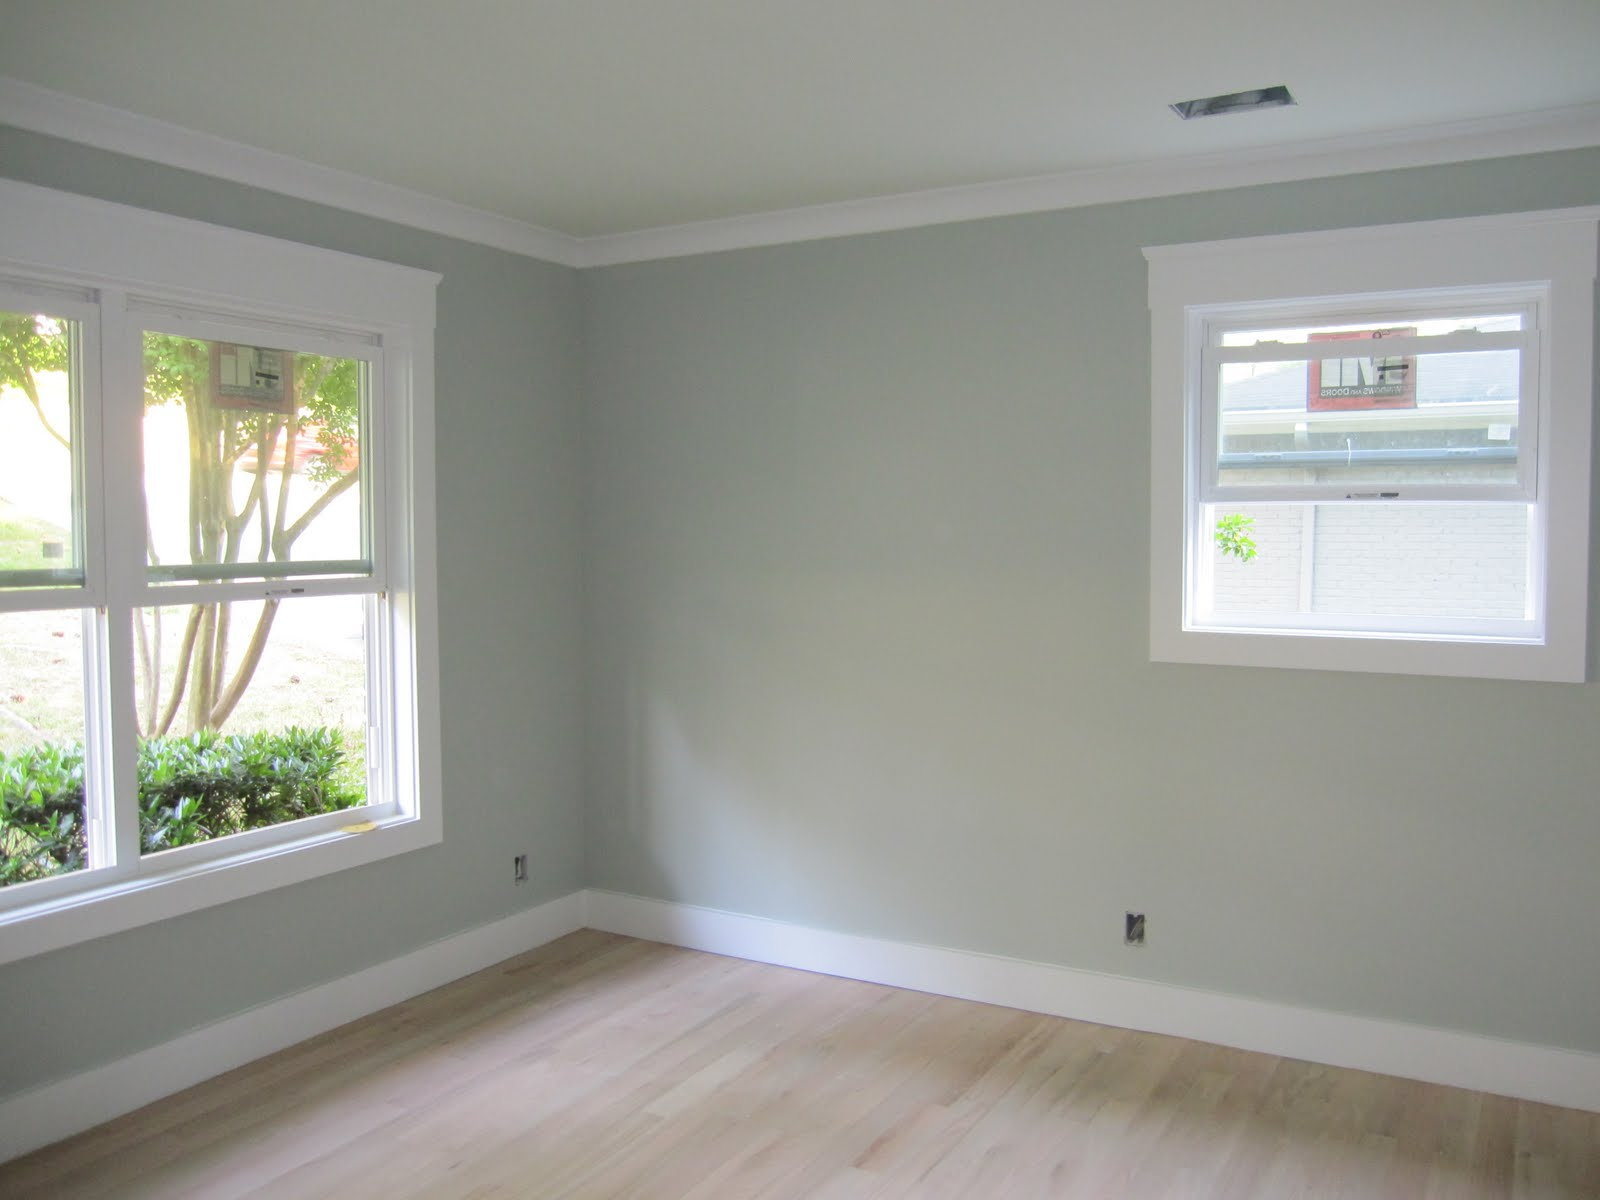 Zodiaq Colors also Paint Colors likewise Need Ideas For Paint Color Oak Trim as well Glass8mmgray as well Taupe. on gray and taupe kitchen